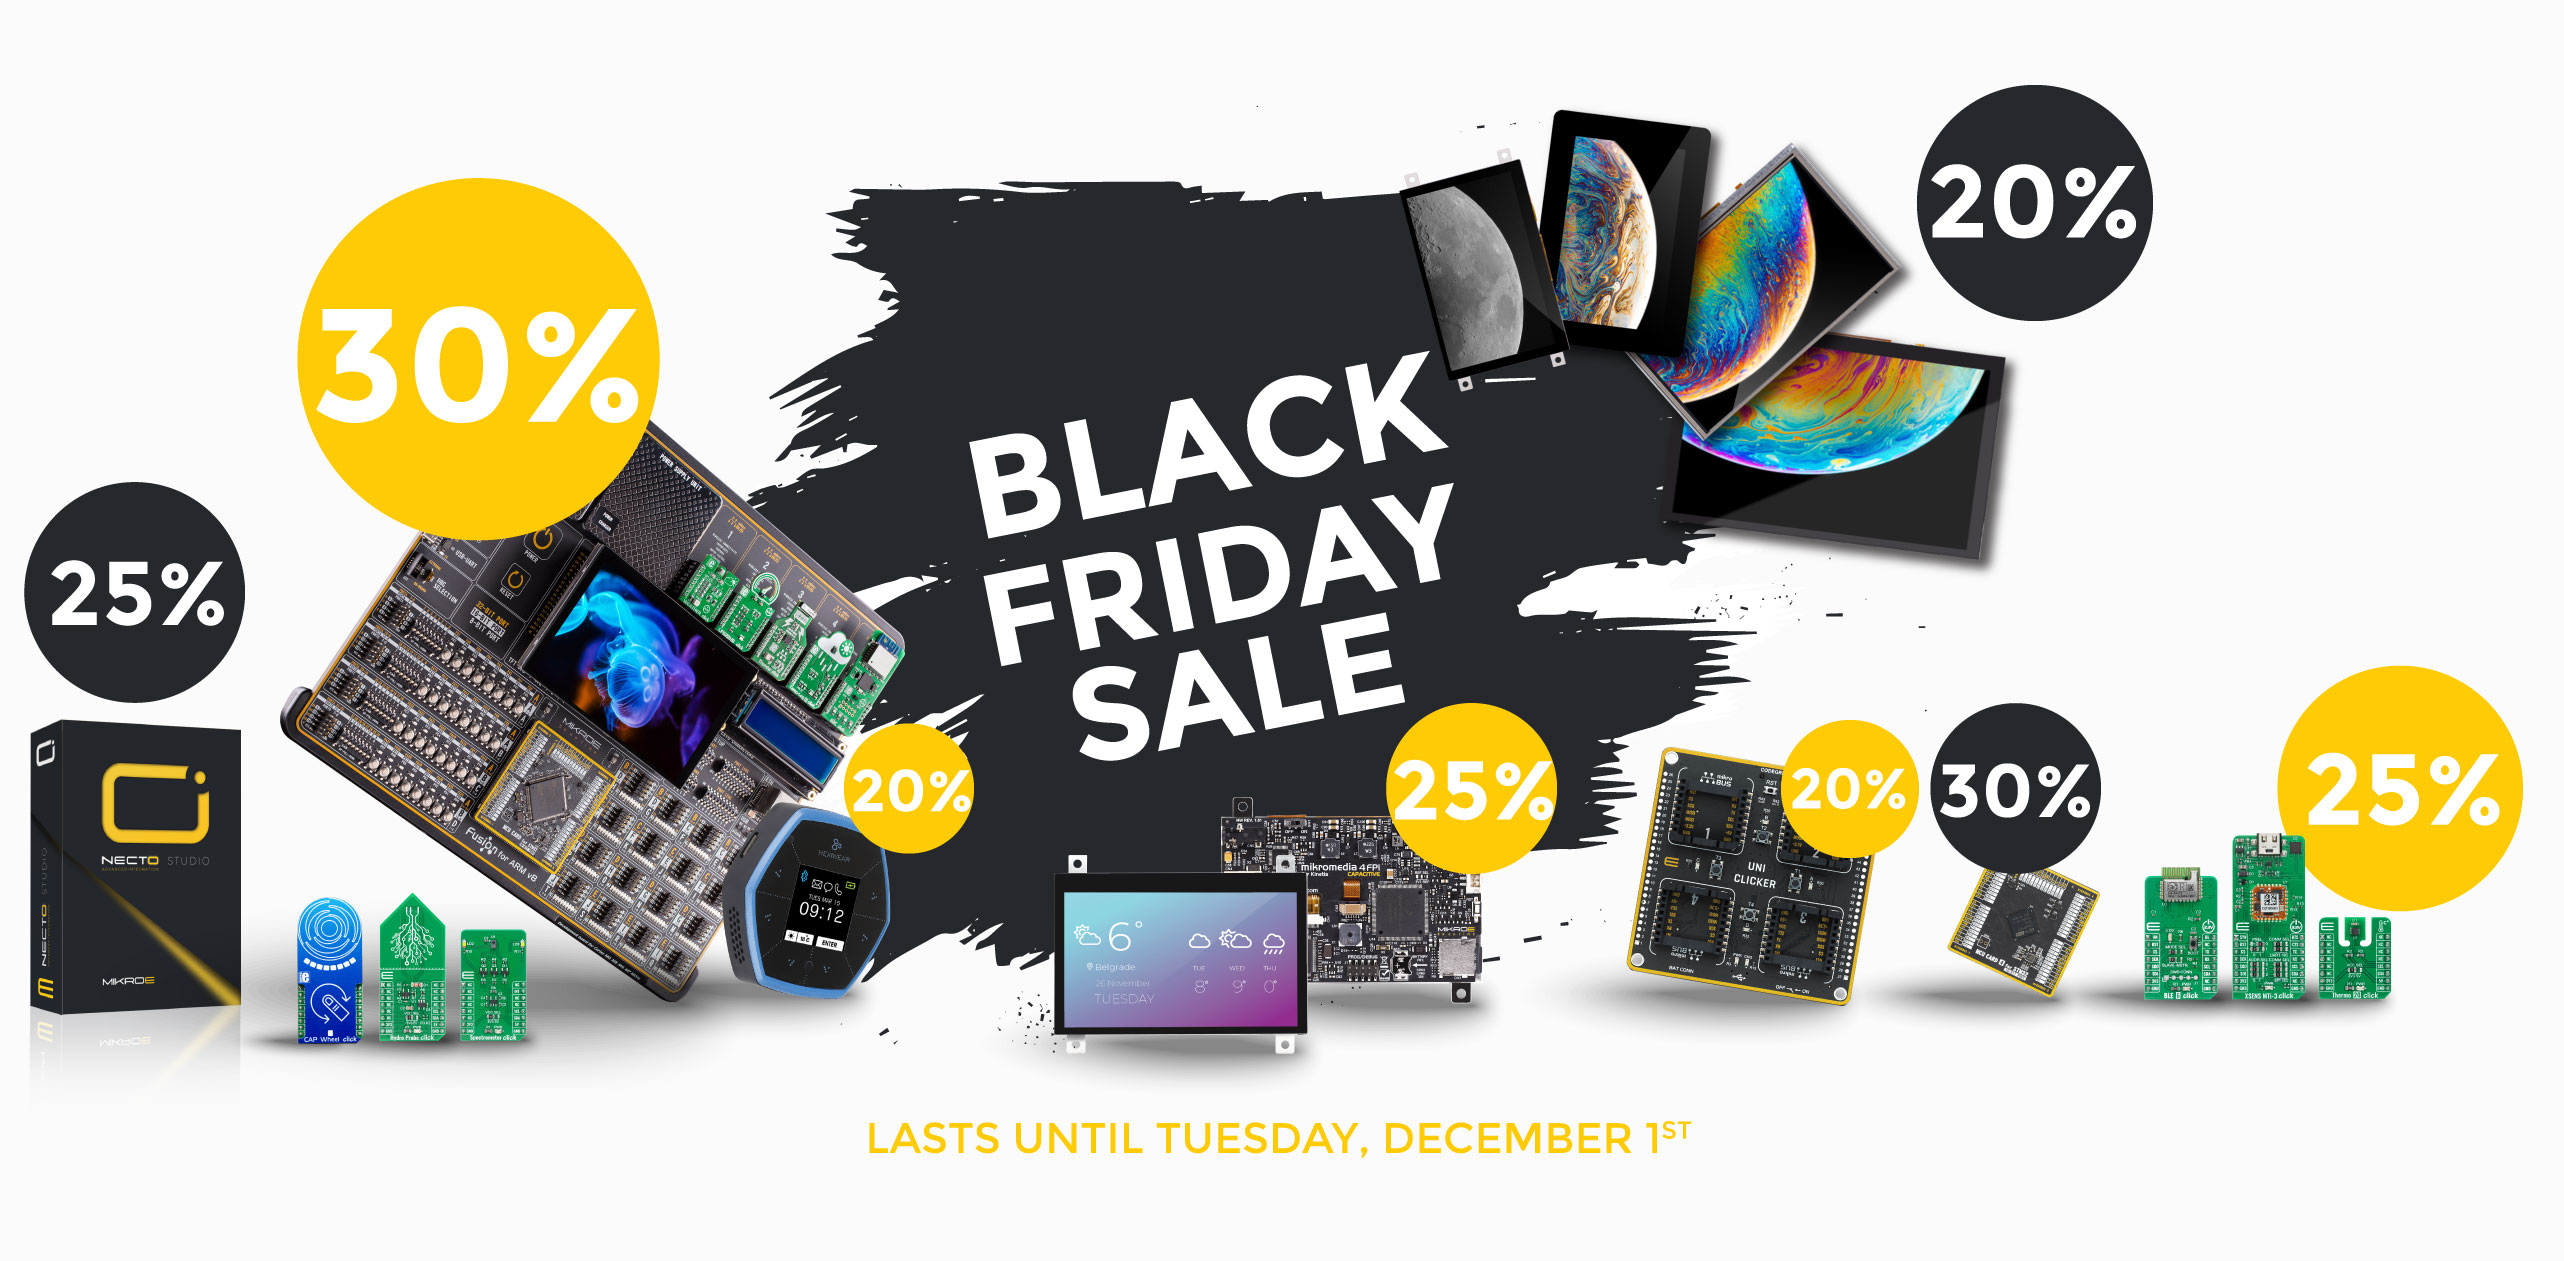 BIG BLACK FRIDAY SALE